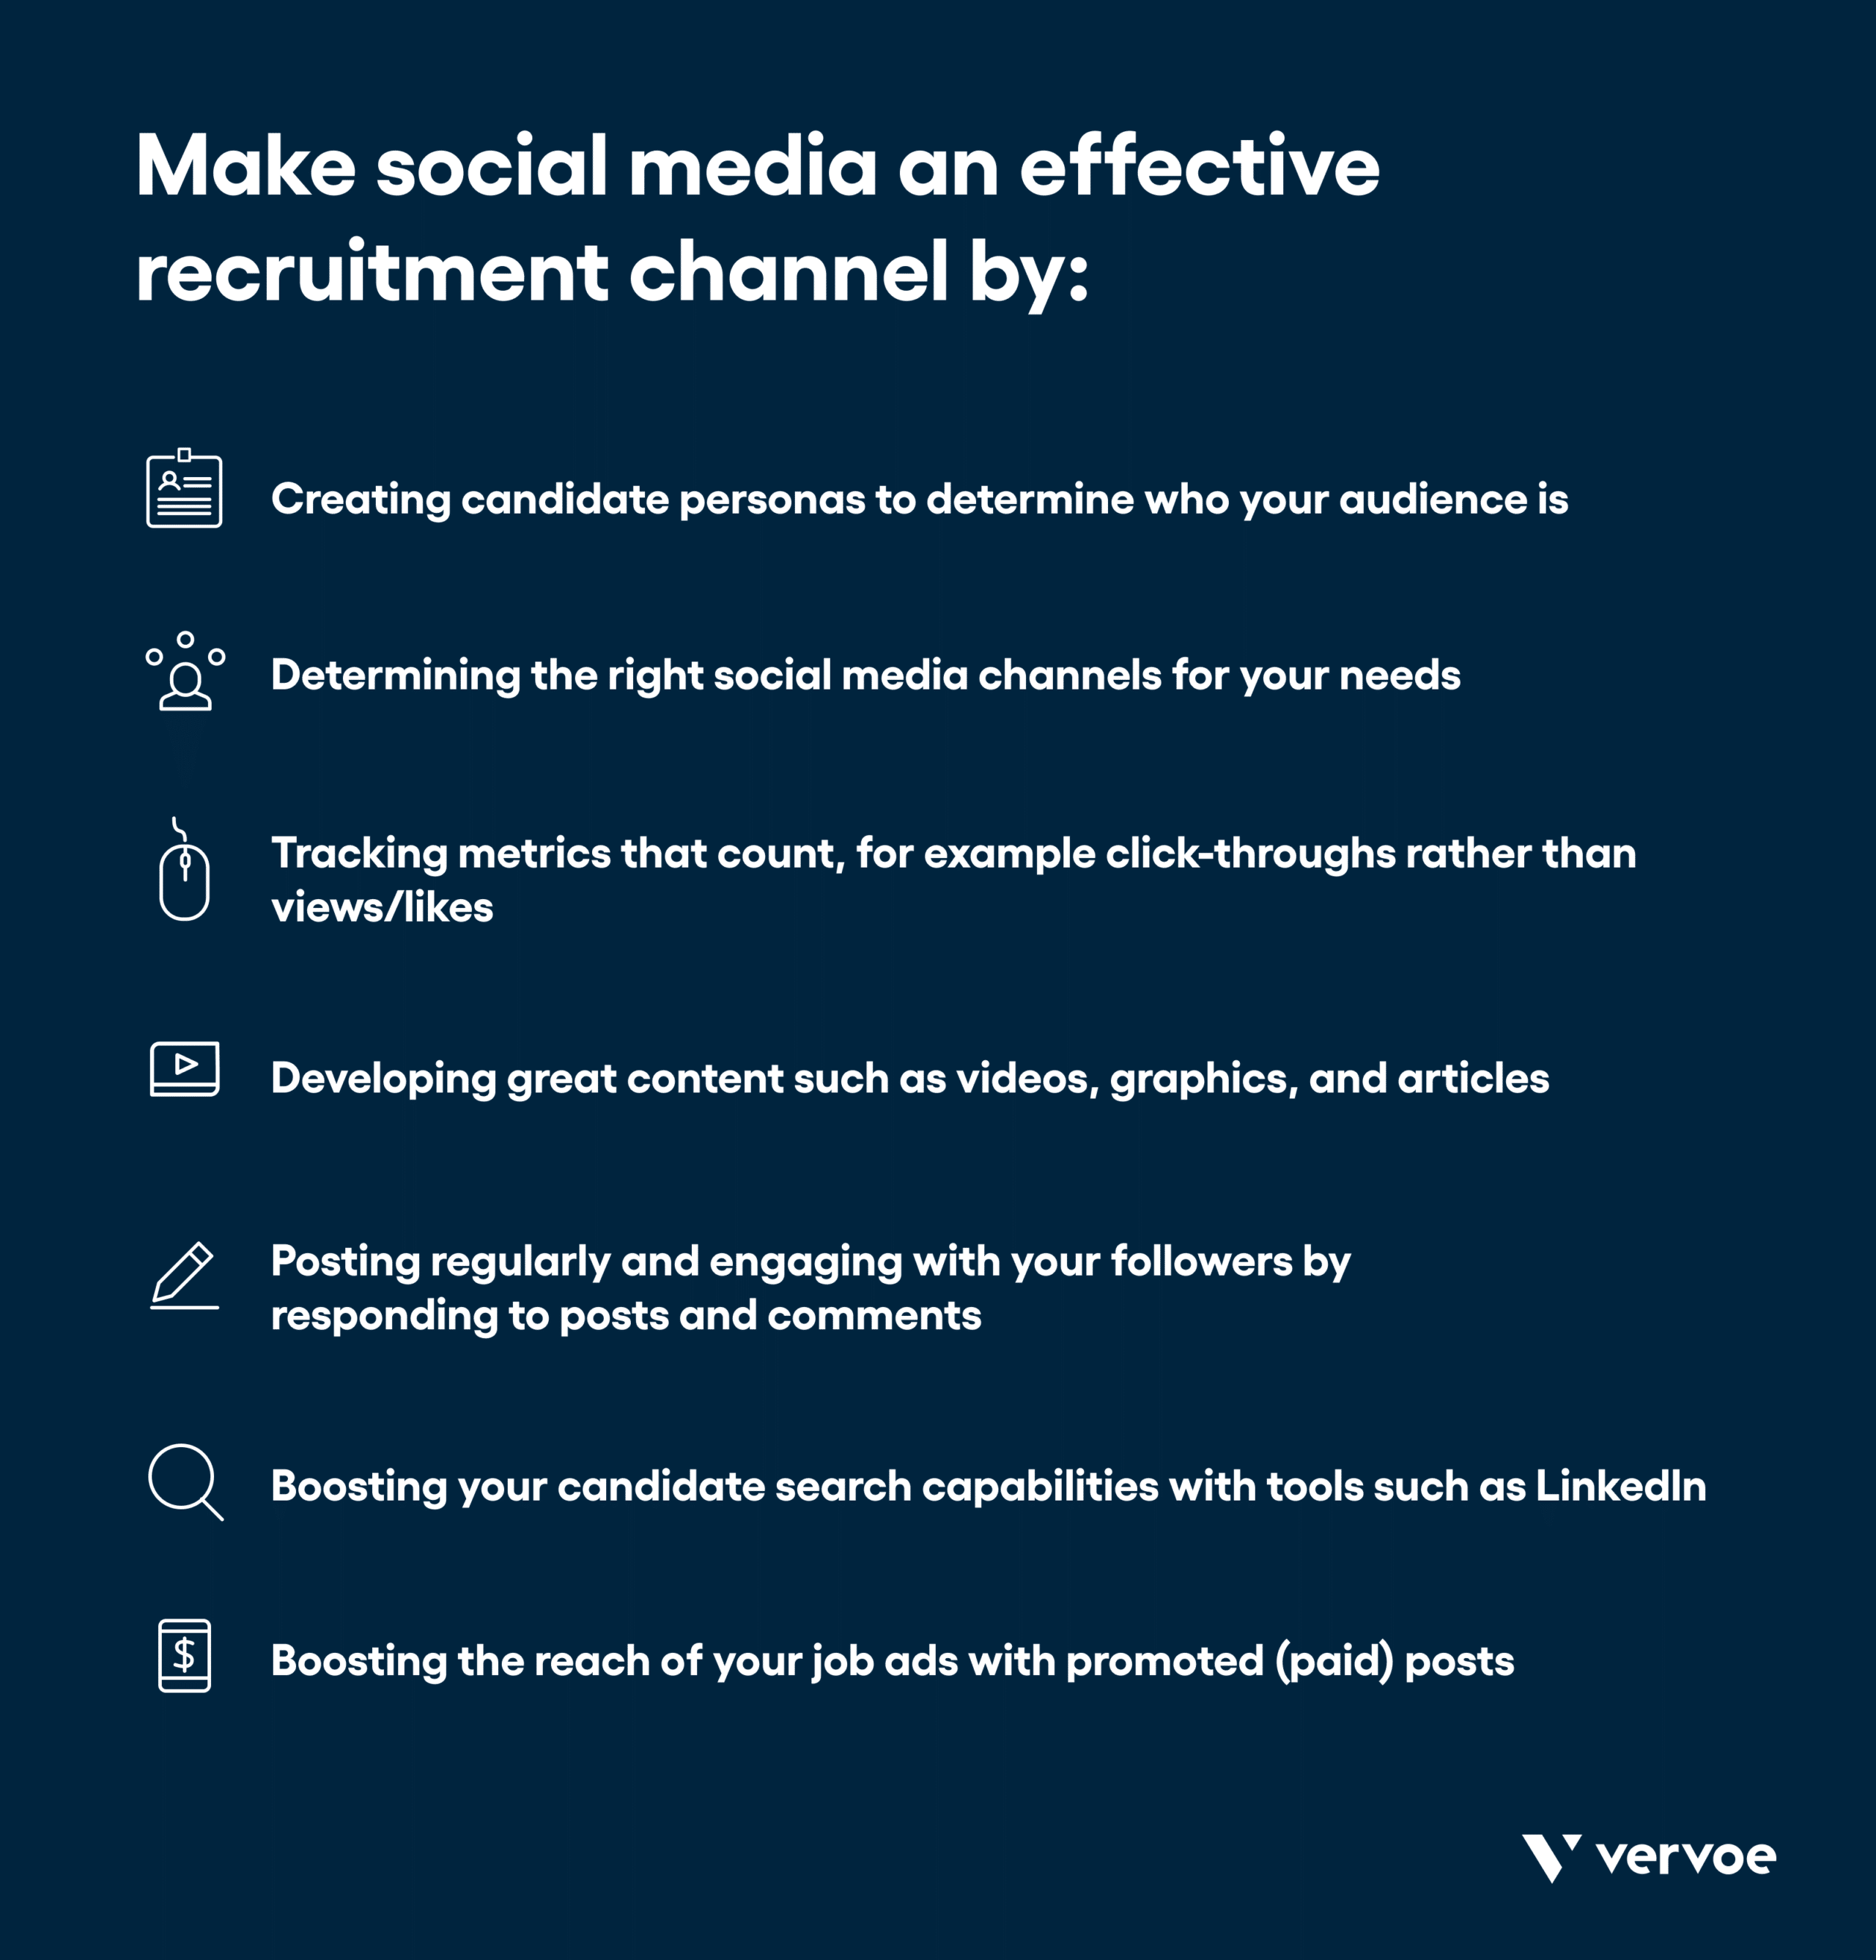 Infographic showing how to make social media an effective recruitment channel